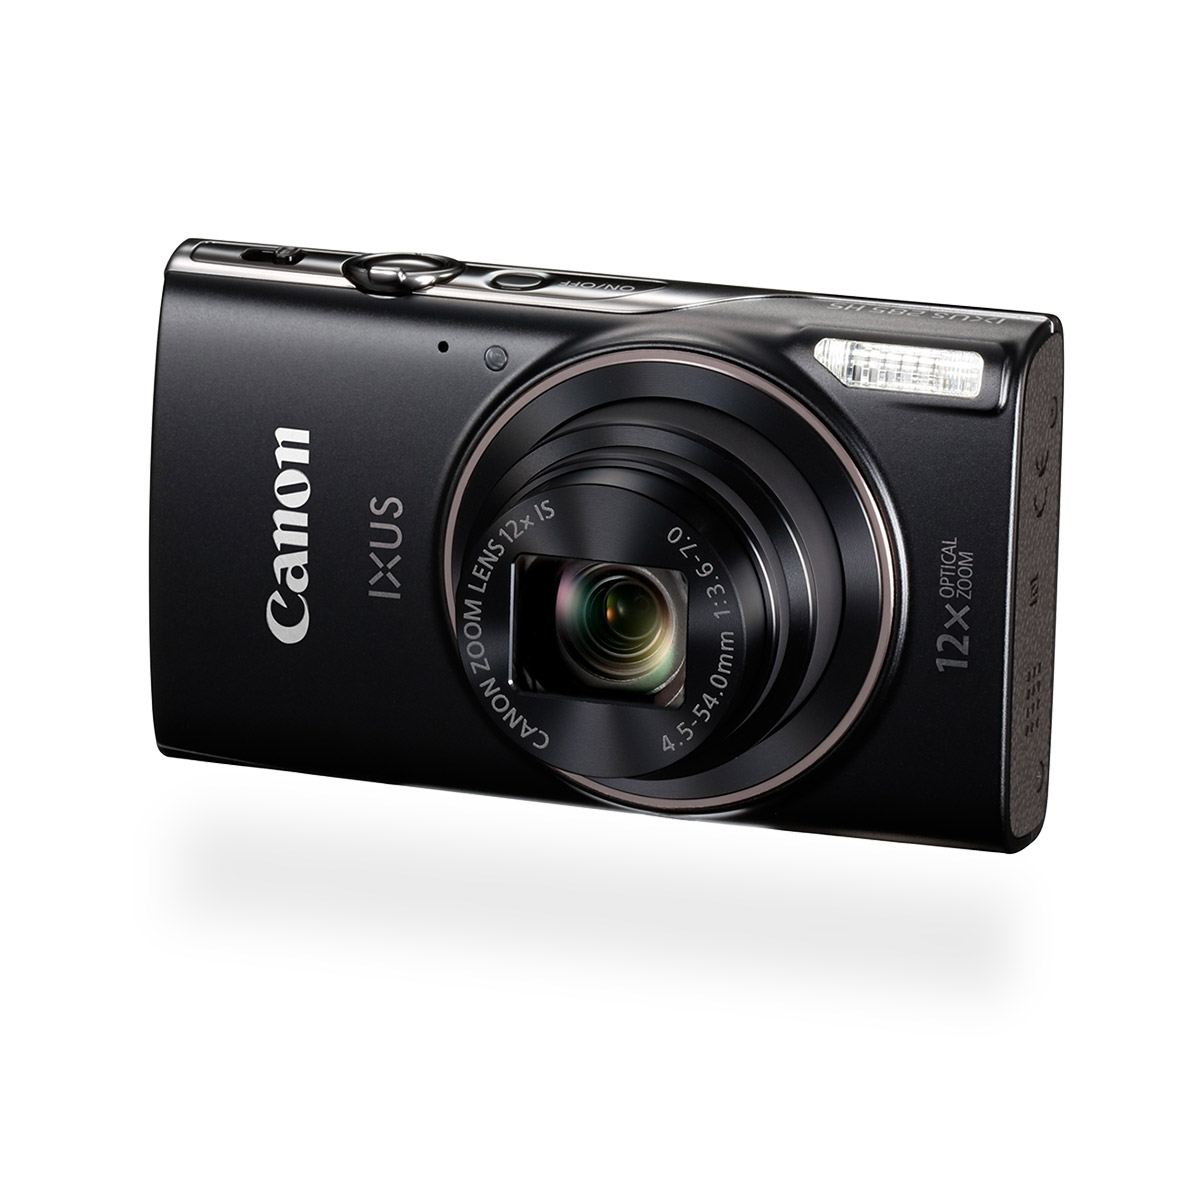 Canon IXUS 285 HS digital compact camera black front angled